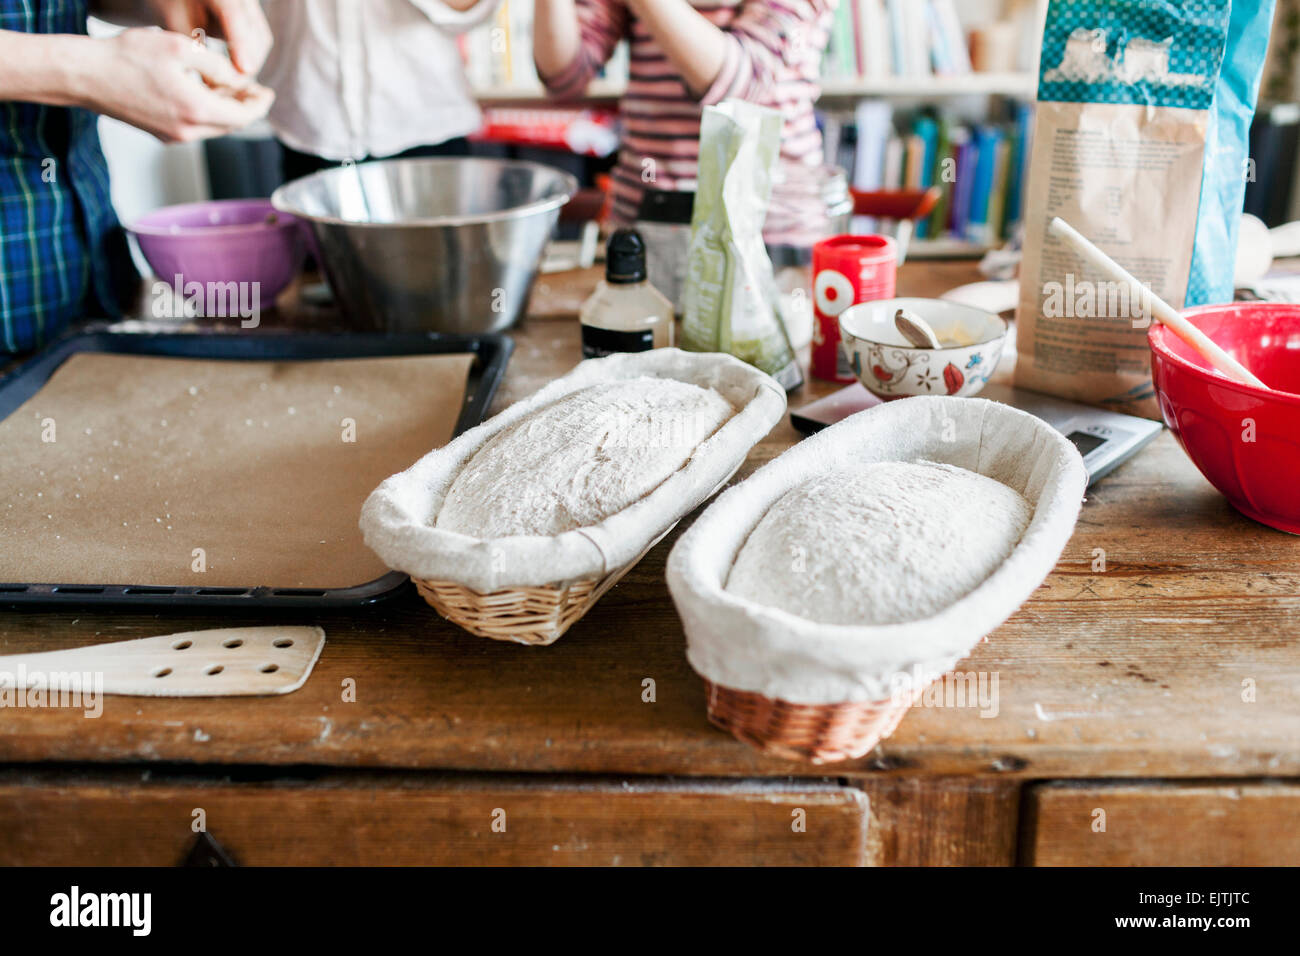 Close-up of dough in baskets with family in background - Stock Image